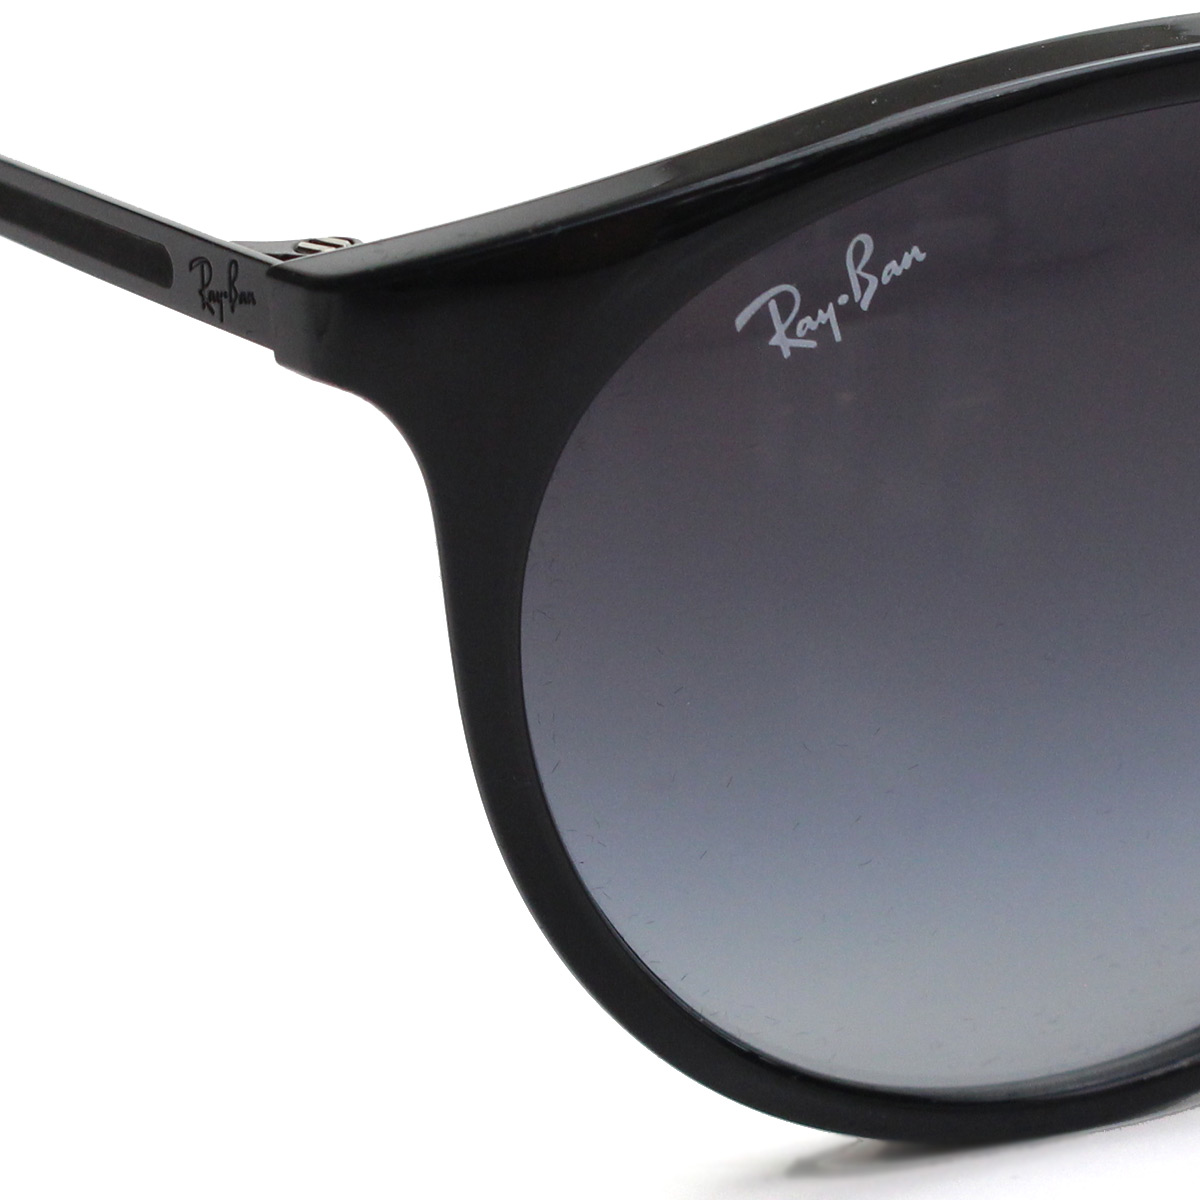 de631be65f4 Bighit The total brand wholesale  Ray-Ban Ray-Ban sunglasses ERIKA ...